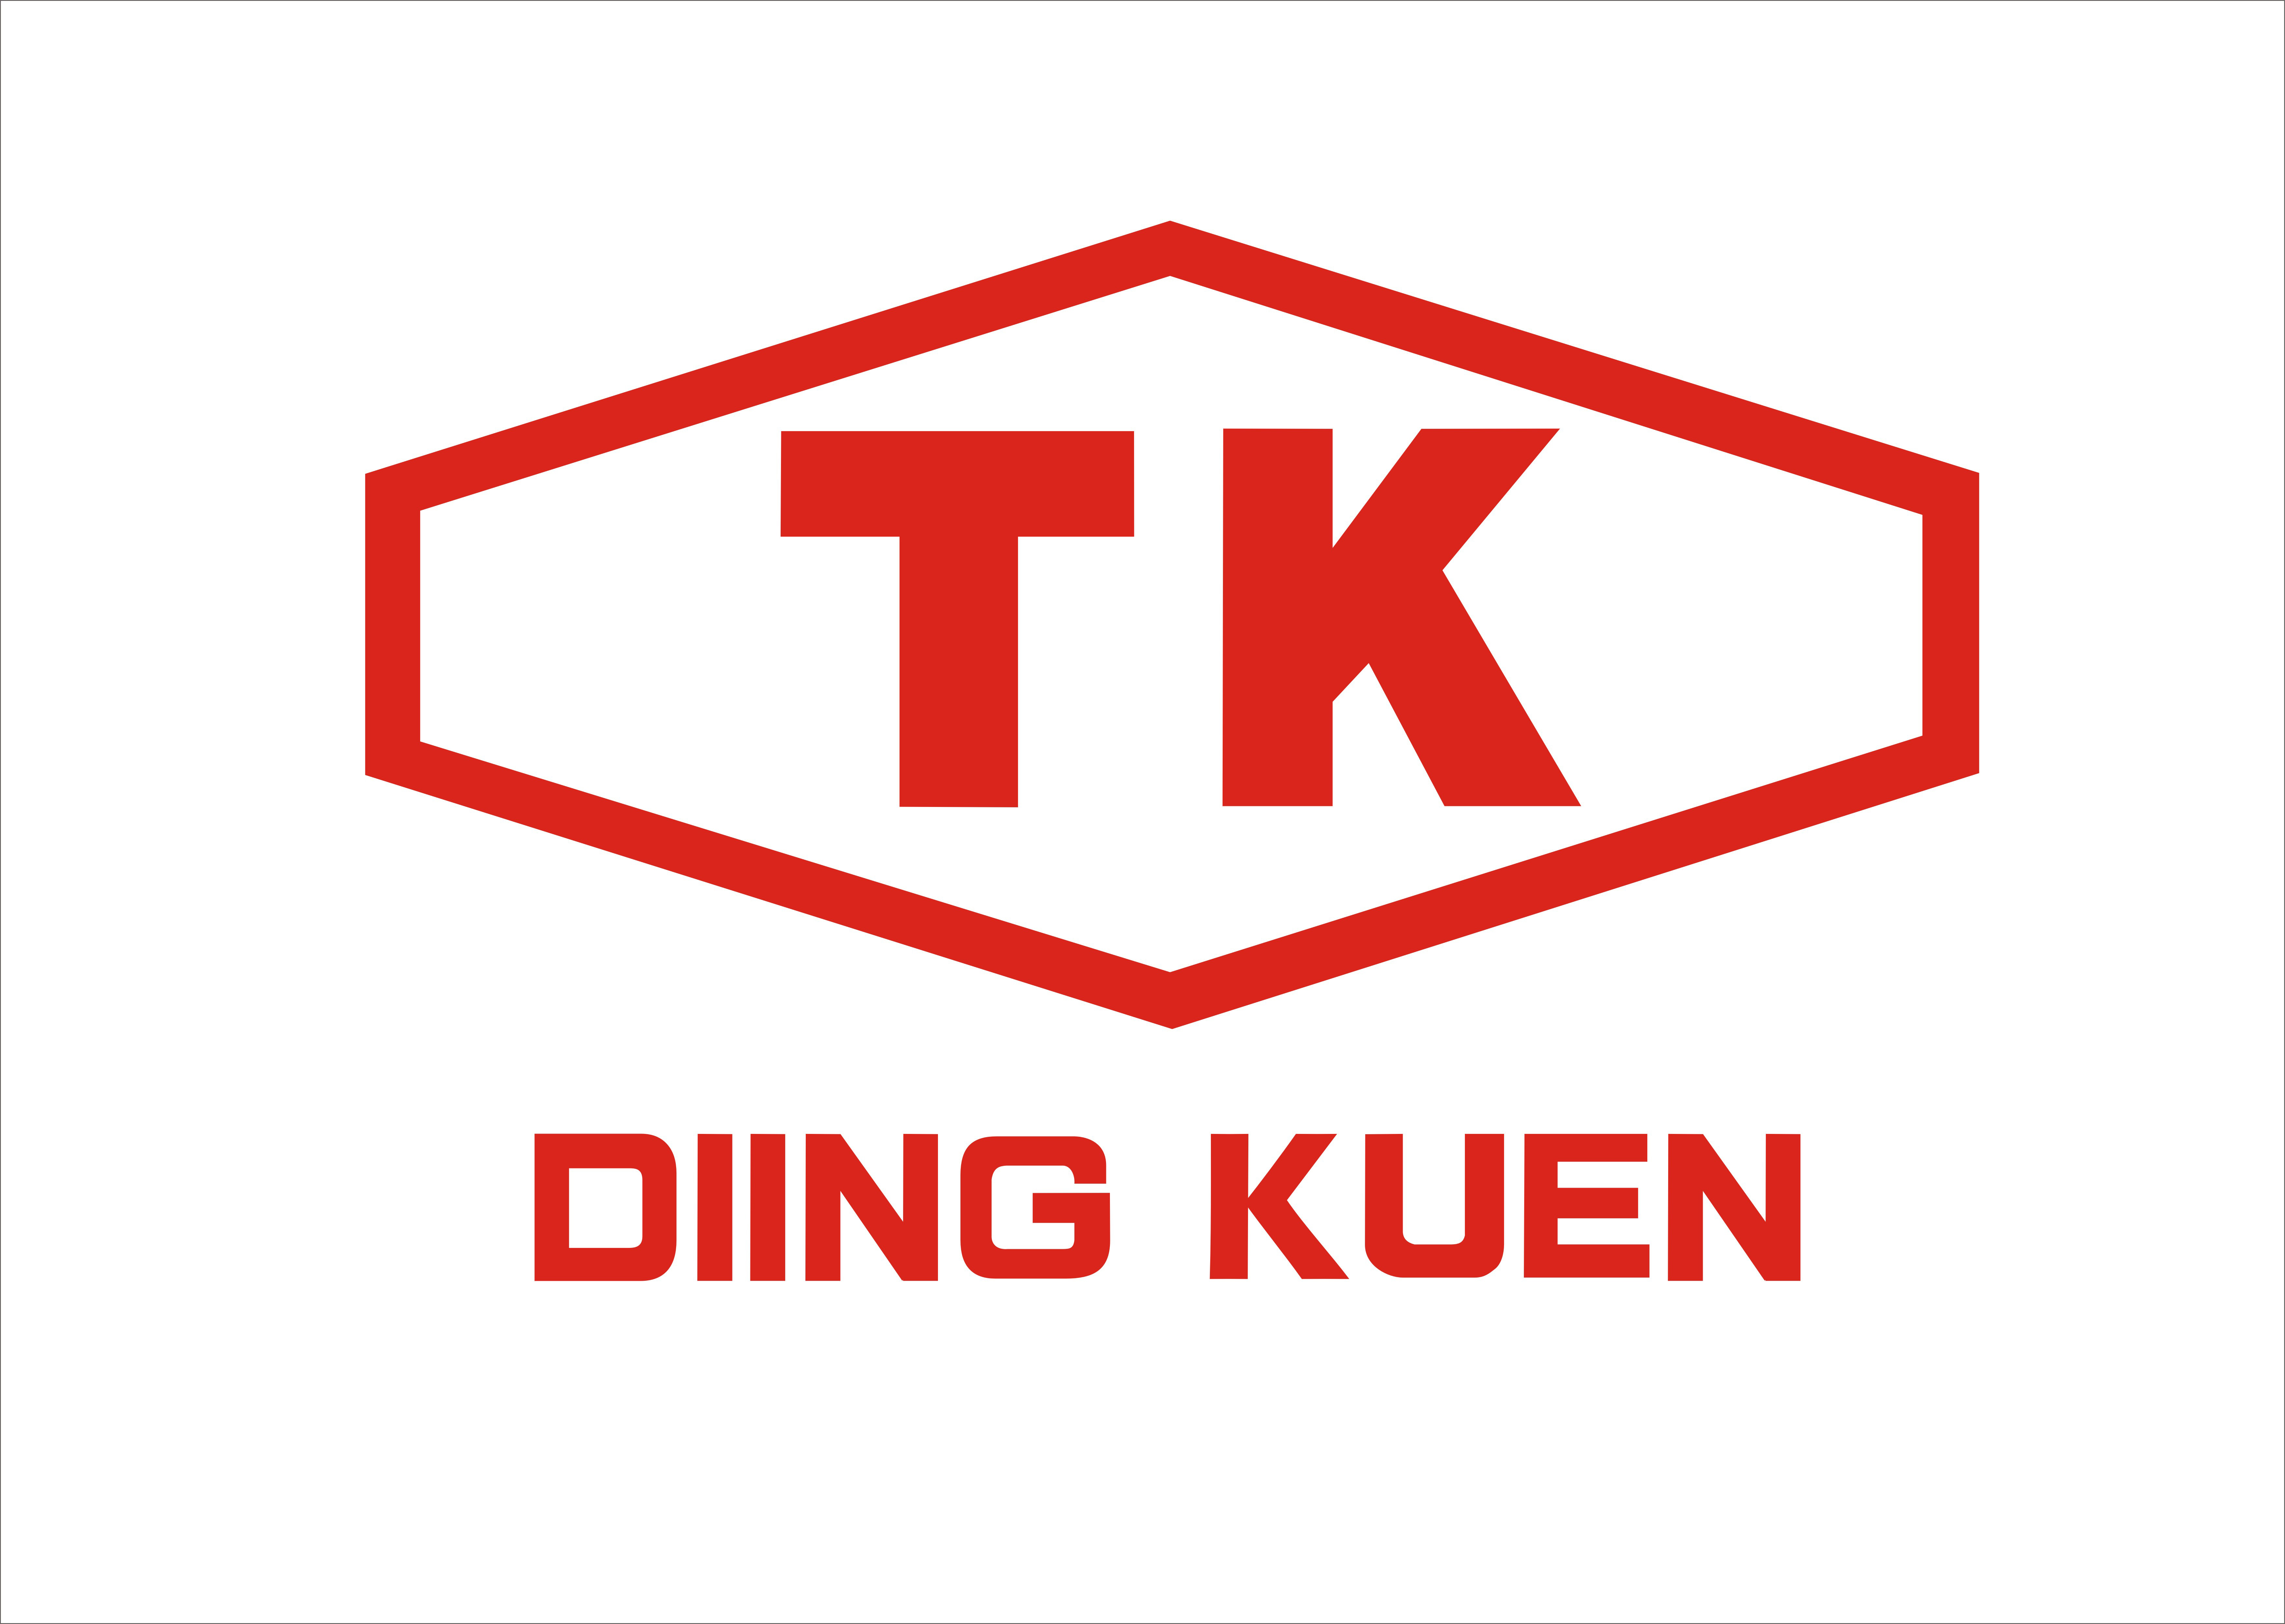 Diing Kuen Plastic Machinery, Co., Ltd